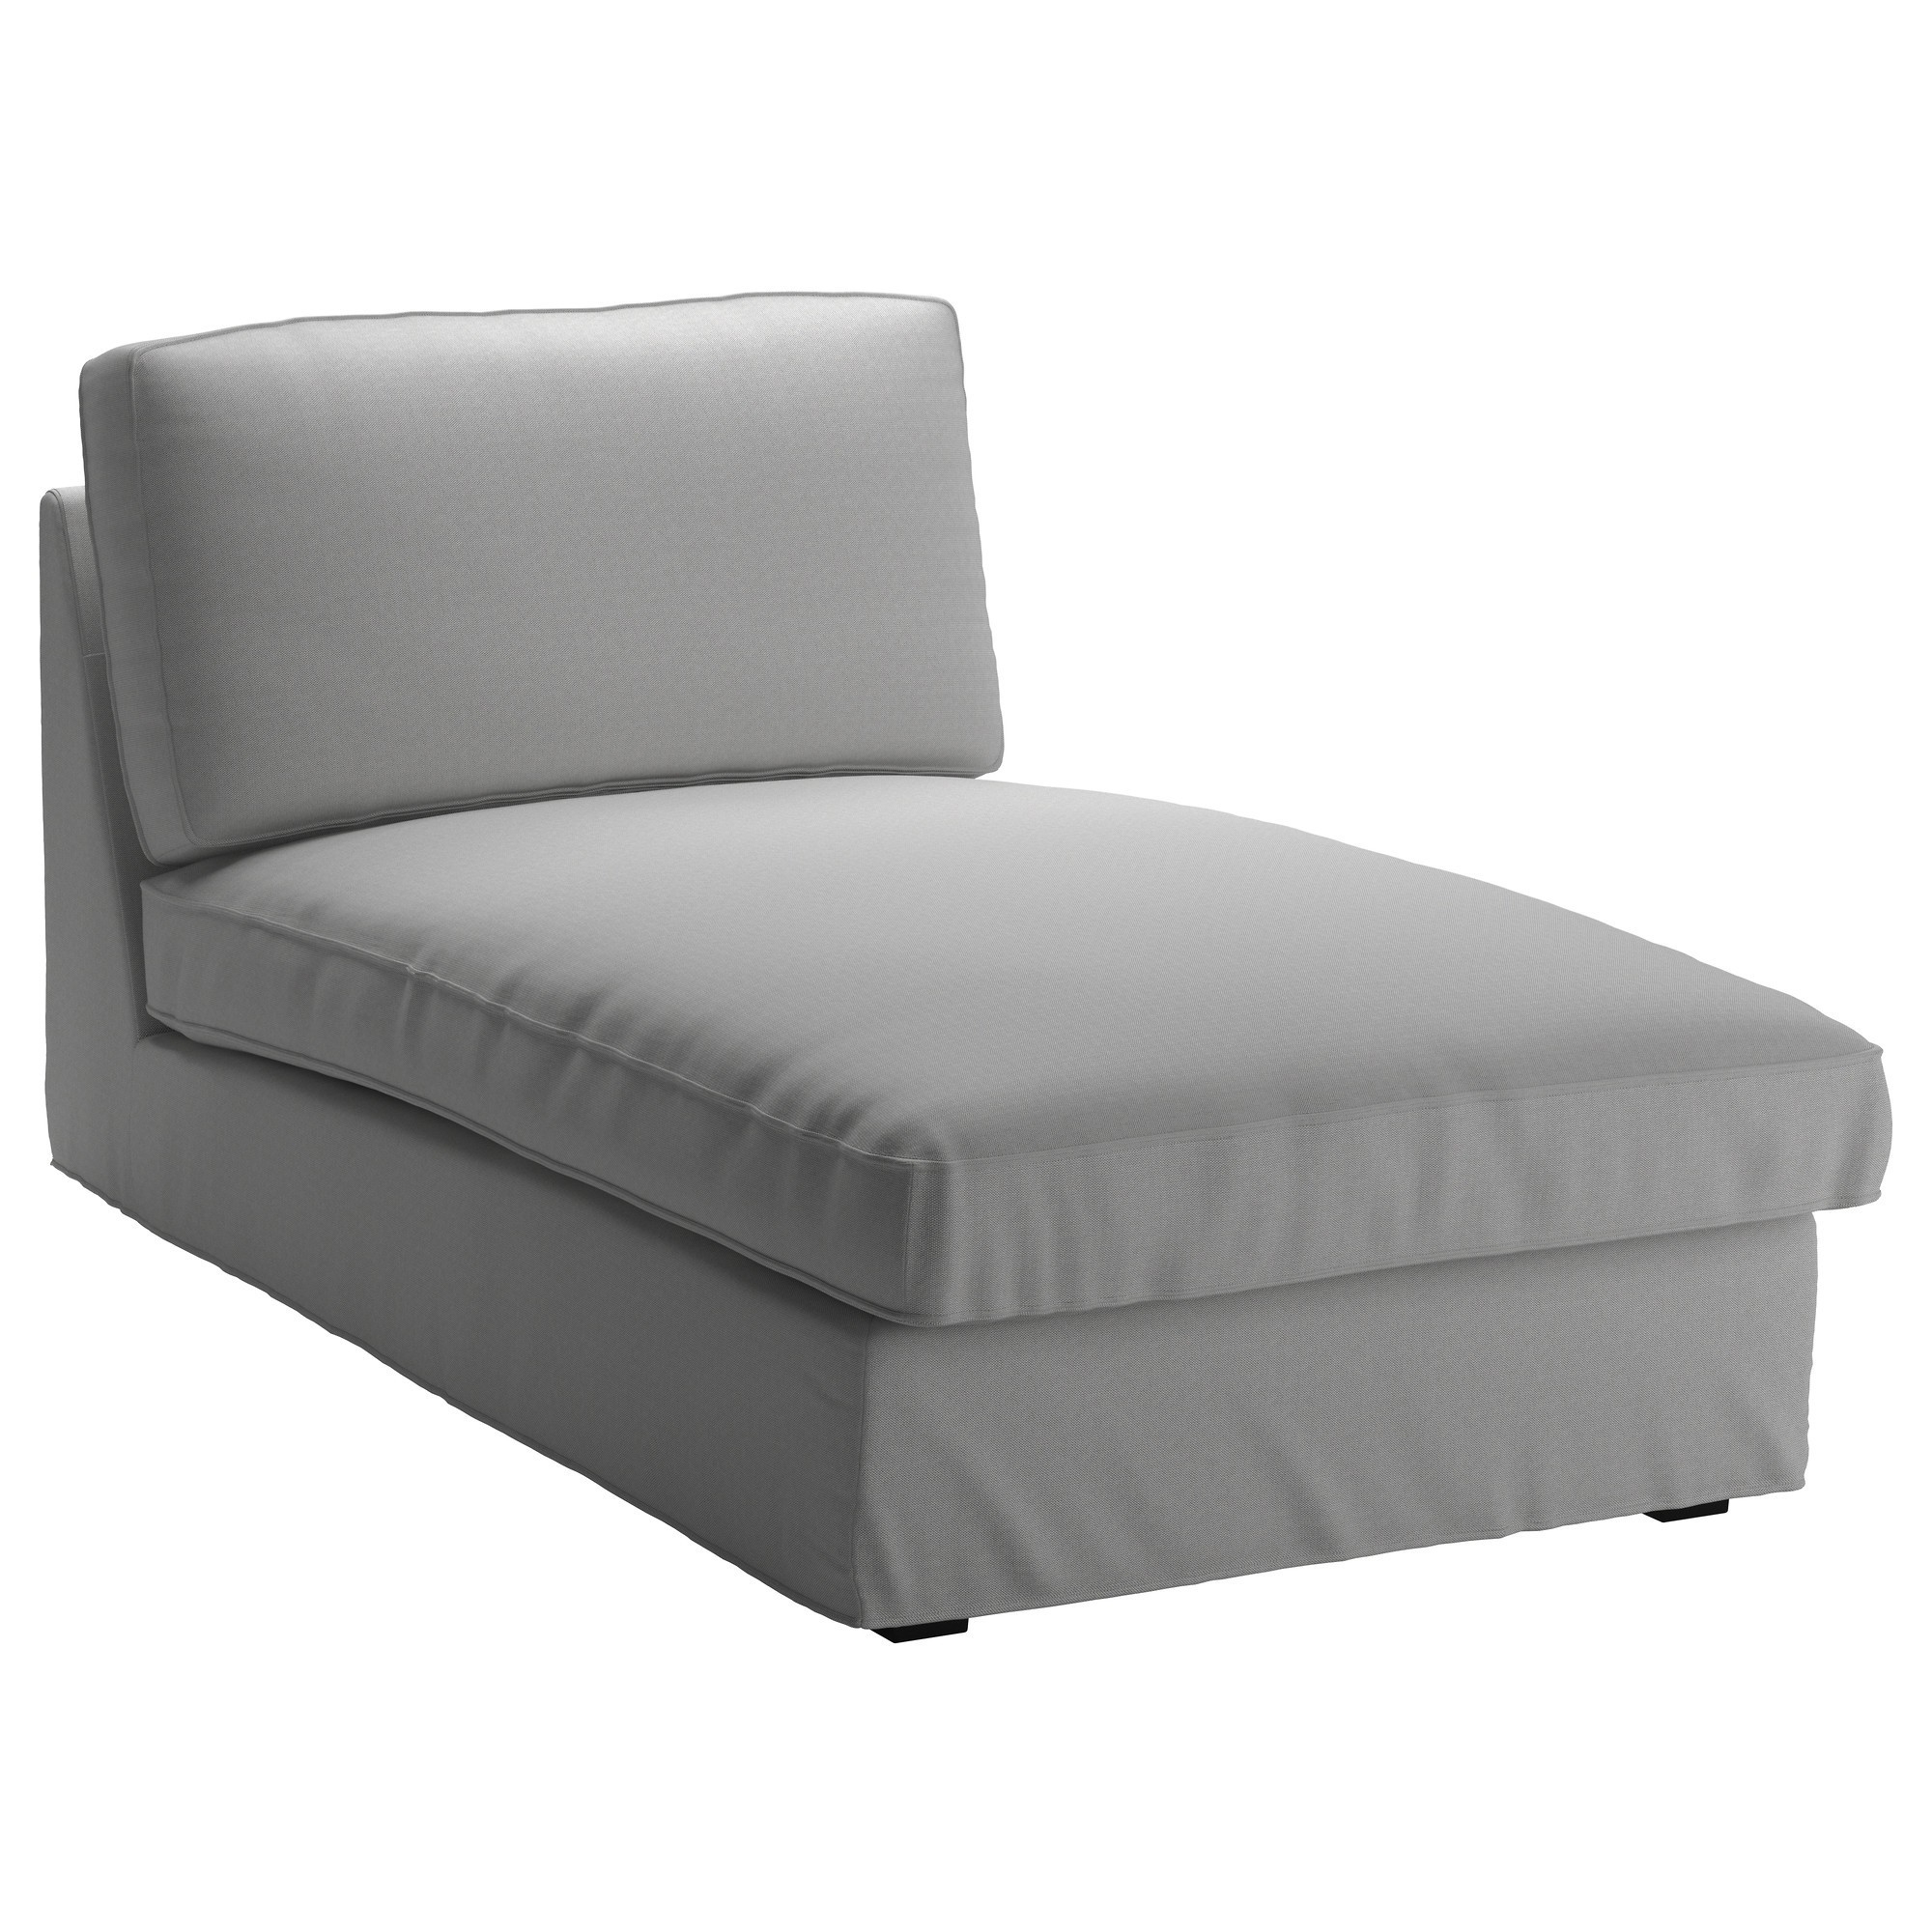 Current Chaise Lounge Mattress Intended For Furniture : Chaise Lounge 2 Arms The Chaise Lounge Menu Chaise (View 4 of 15)